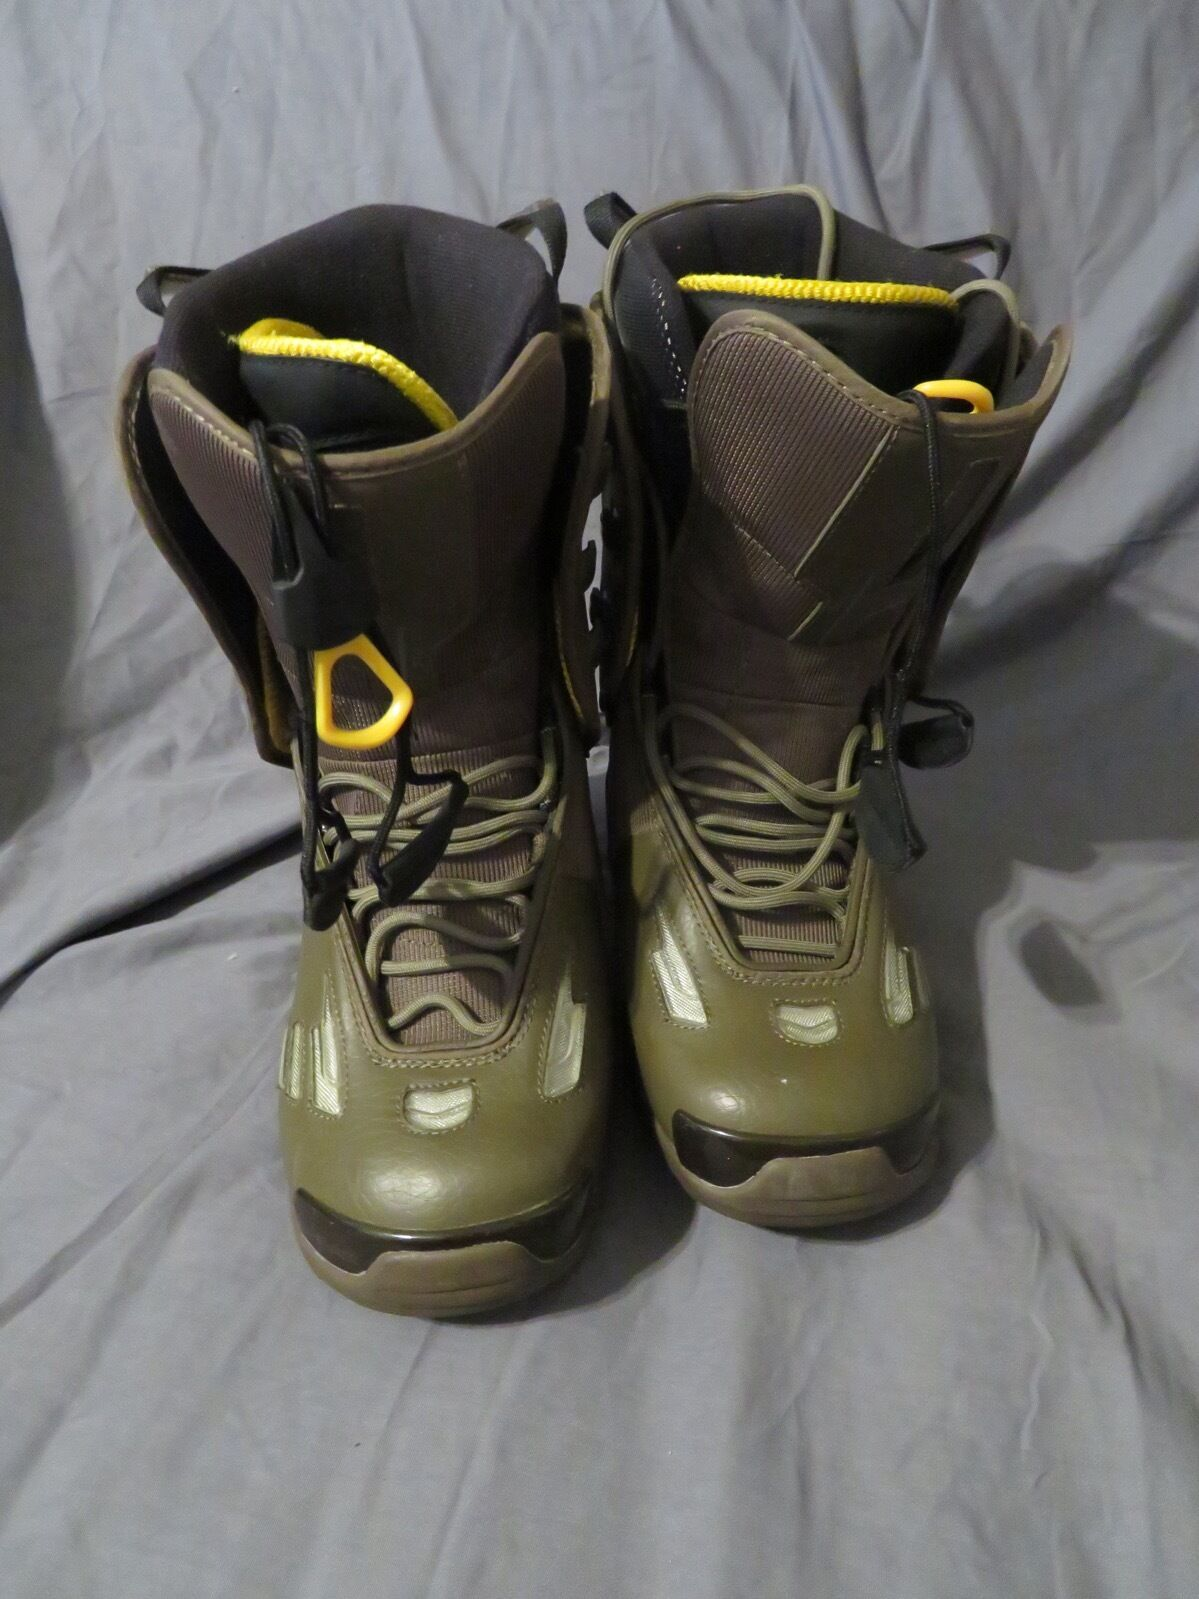 Women's Head 5.40 Snowboard Boots Hybrid Thermo-Fit Army Green Size 9.5 NICE